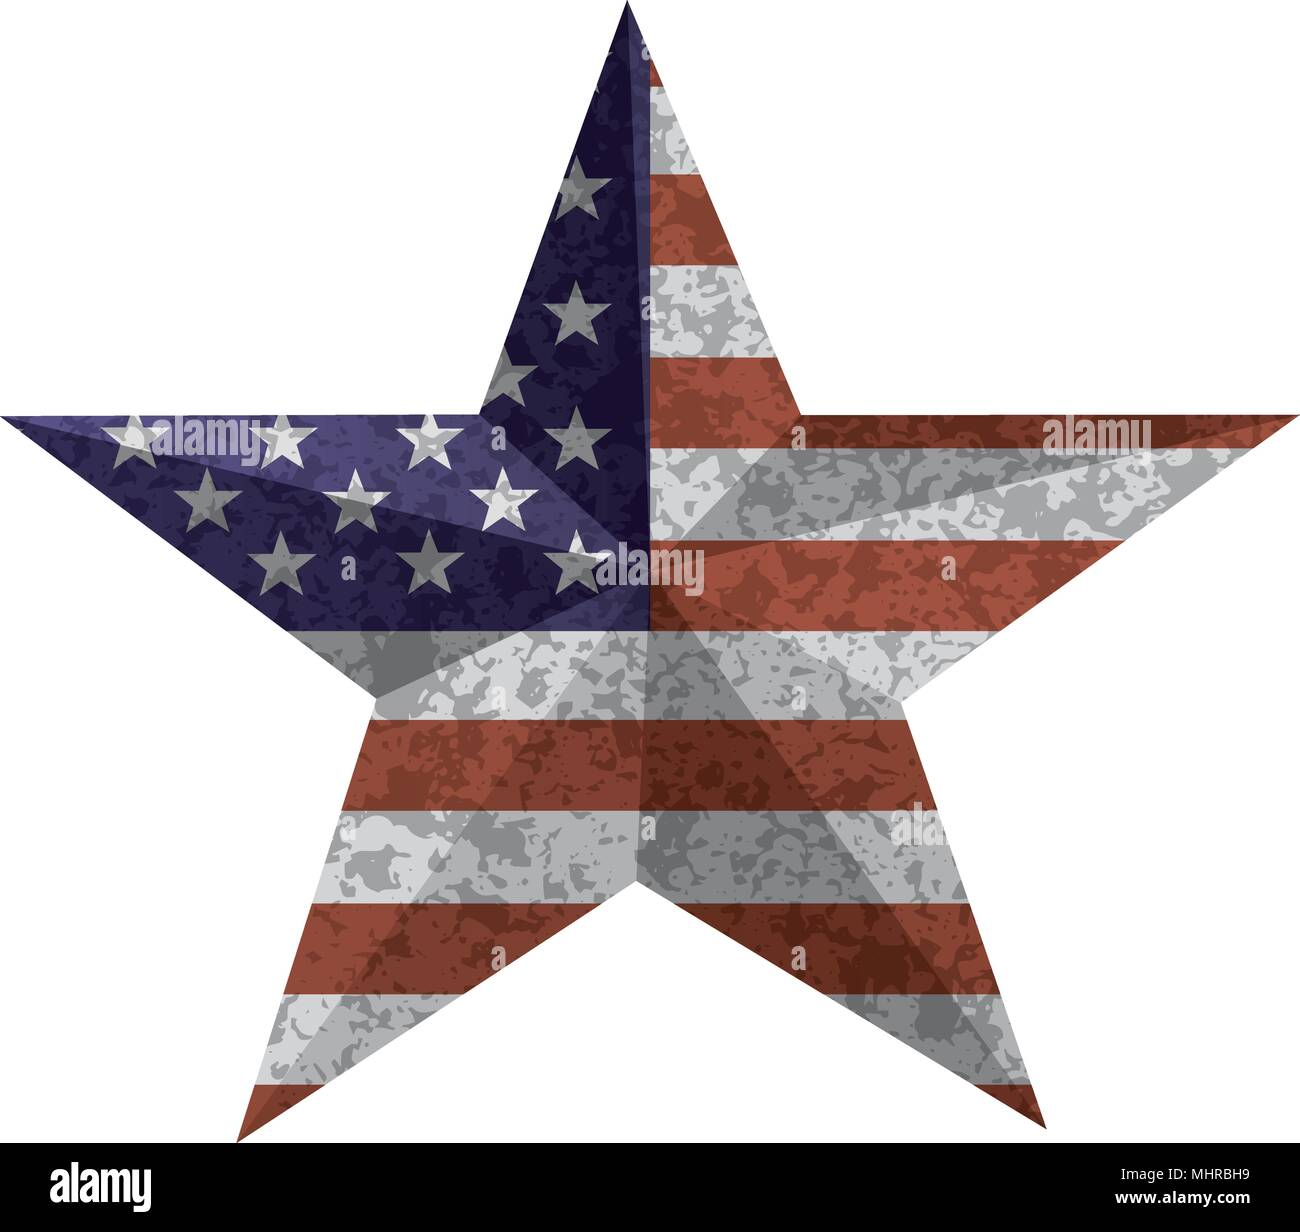 4th of July Independence Day 3D Star Shape with USA American Flag Grunge Texture Illustration - Stock Vector